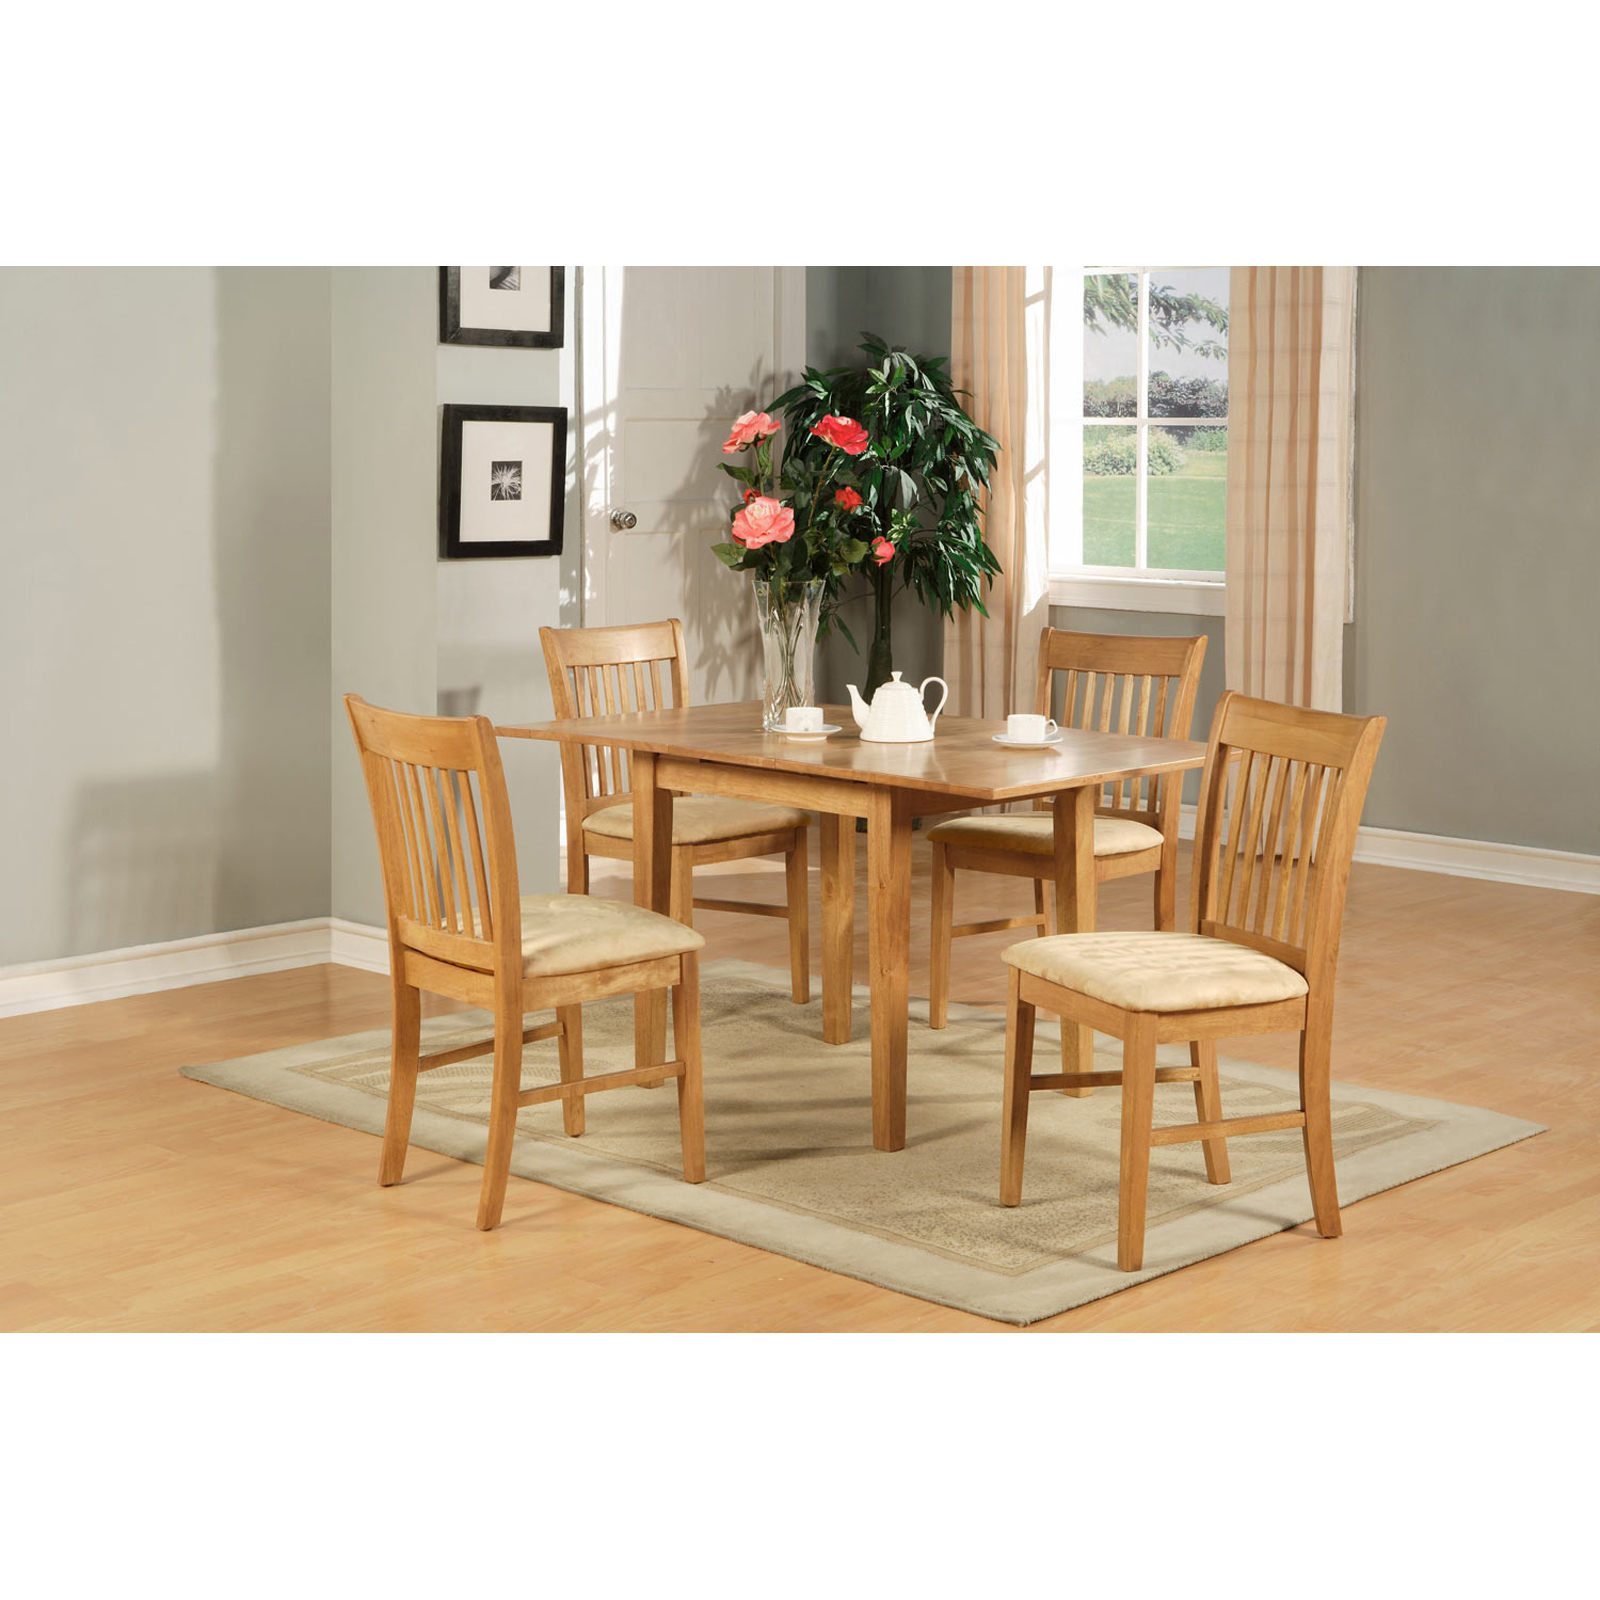 East West Furniture Norfolk 3pc Rectangular Table With 2 Cushioned Seat Chairs Mahogany